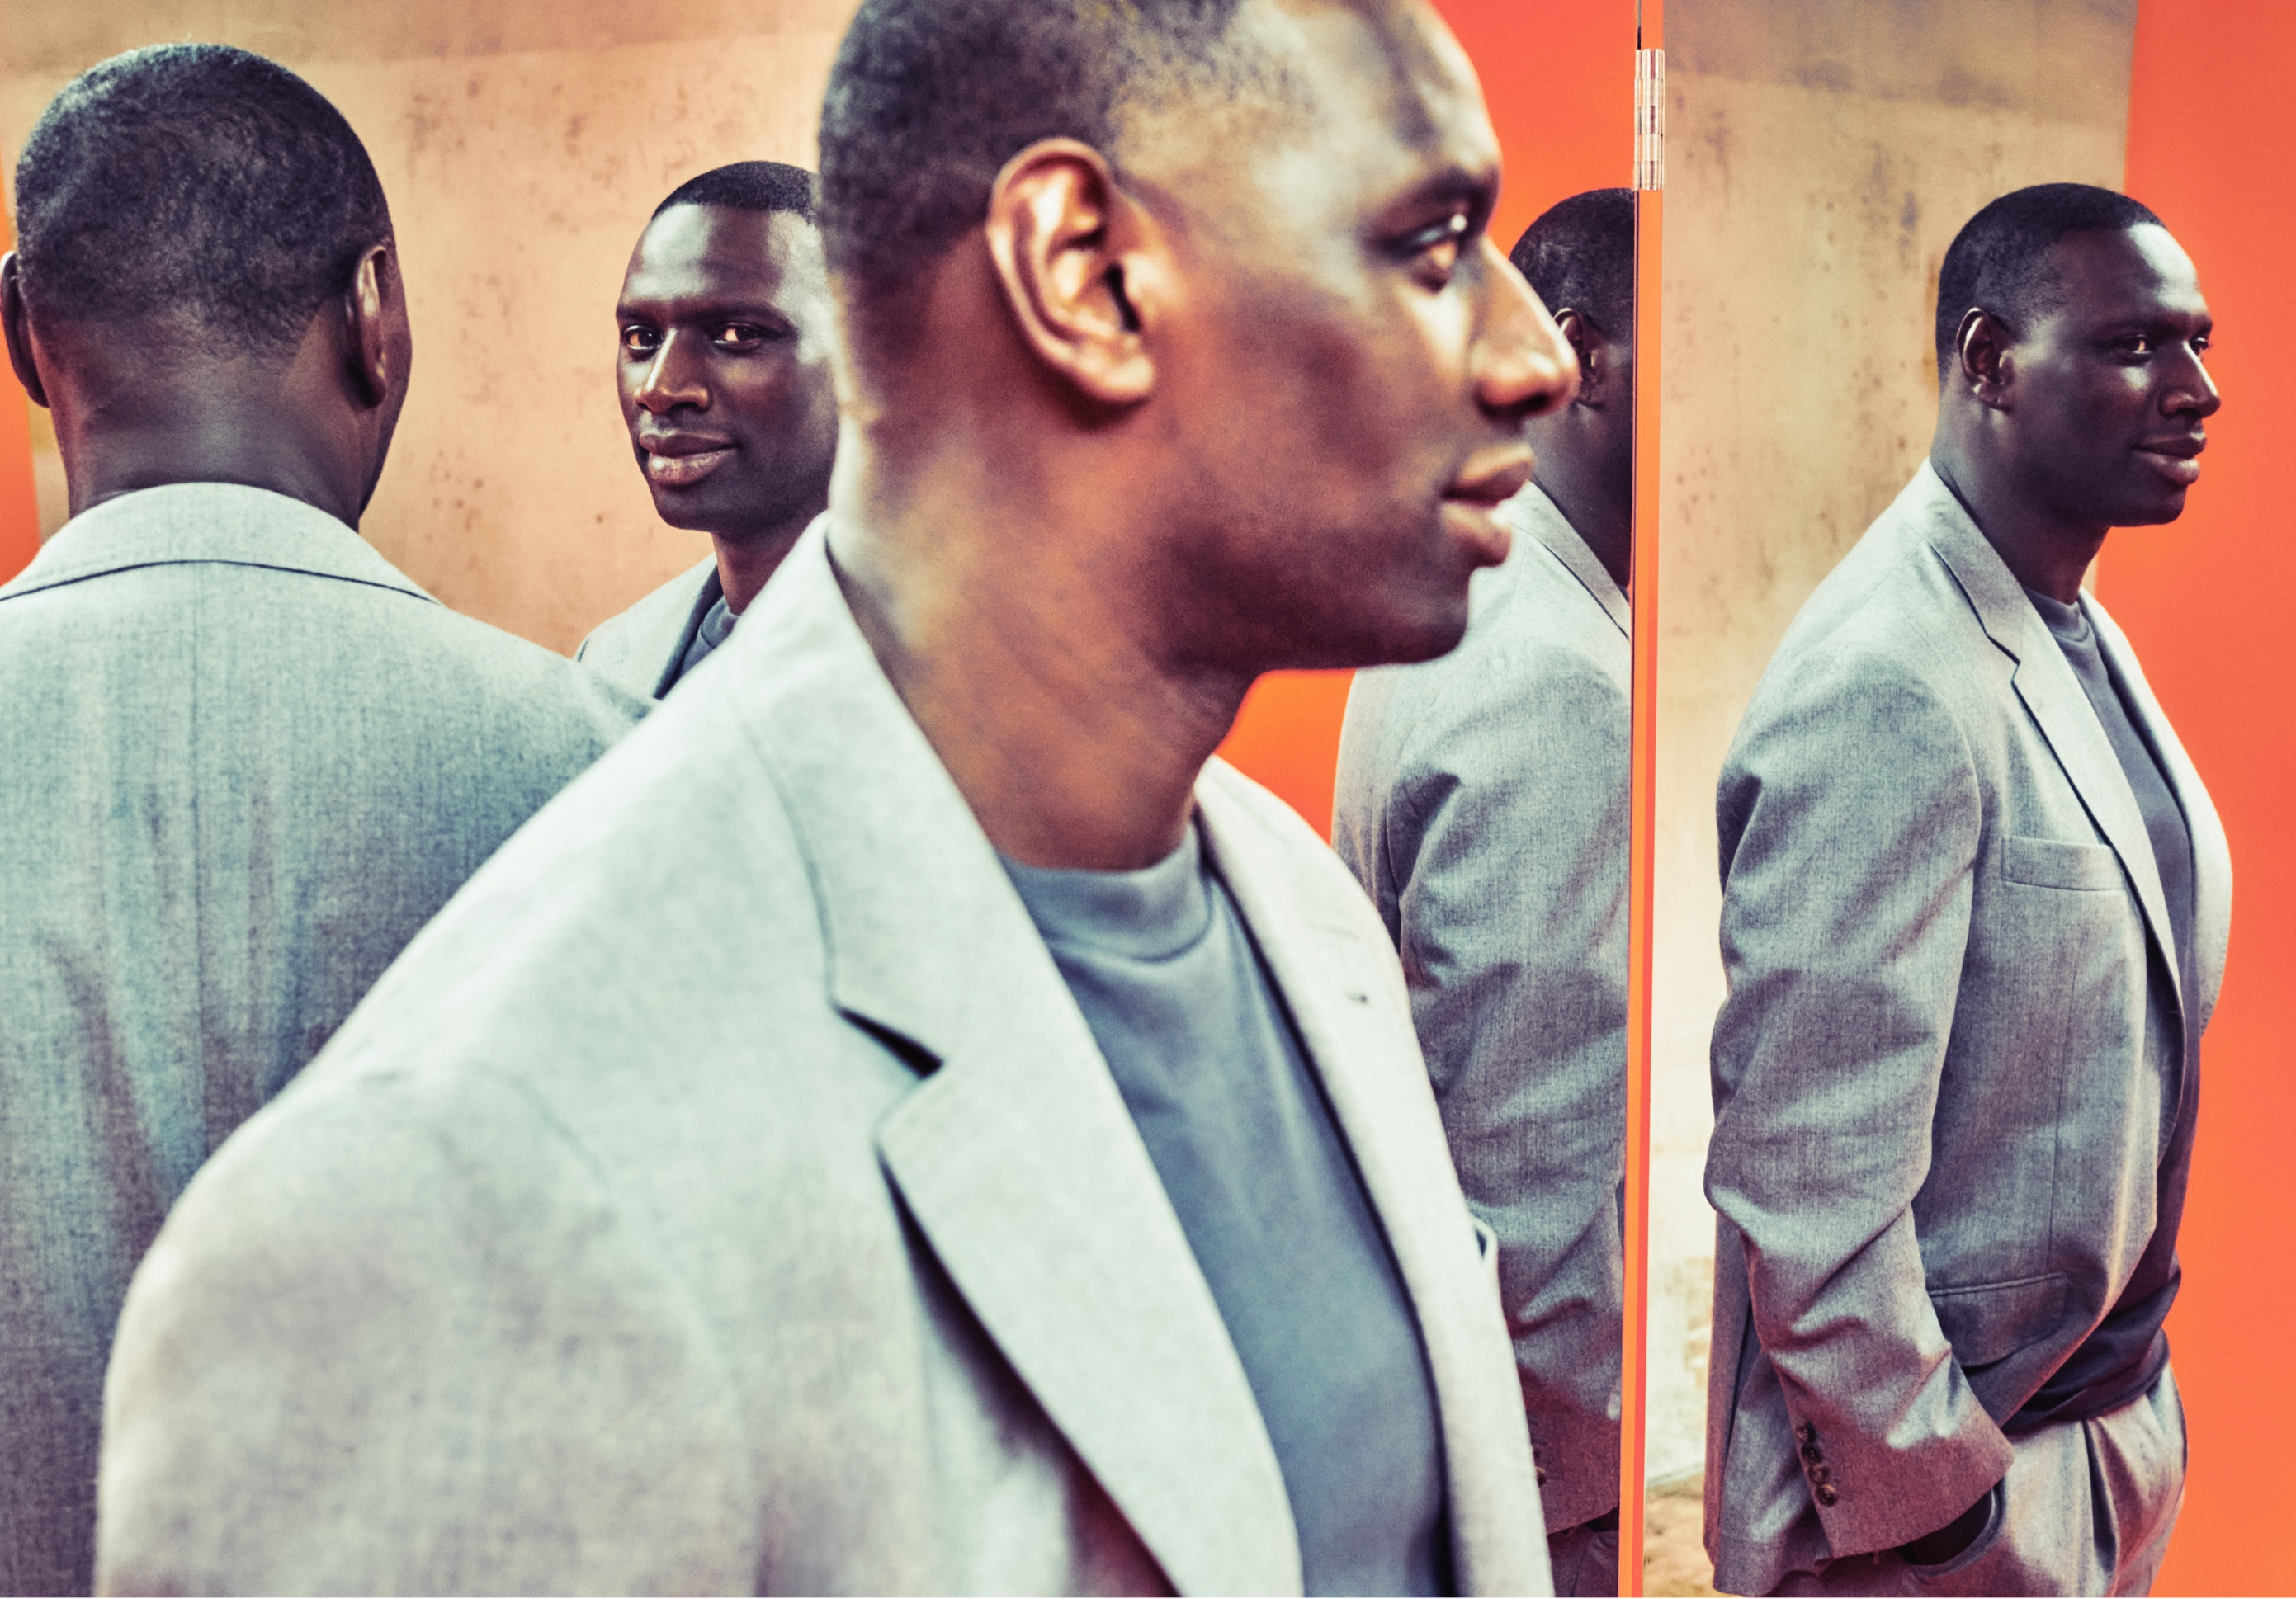 Reflections of Omar Sy populate this brightly colored image. The actor is pictured in a light-colored blazer, which pops against a strong orange background.